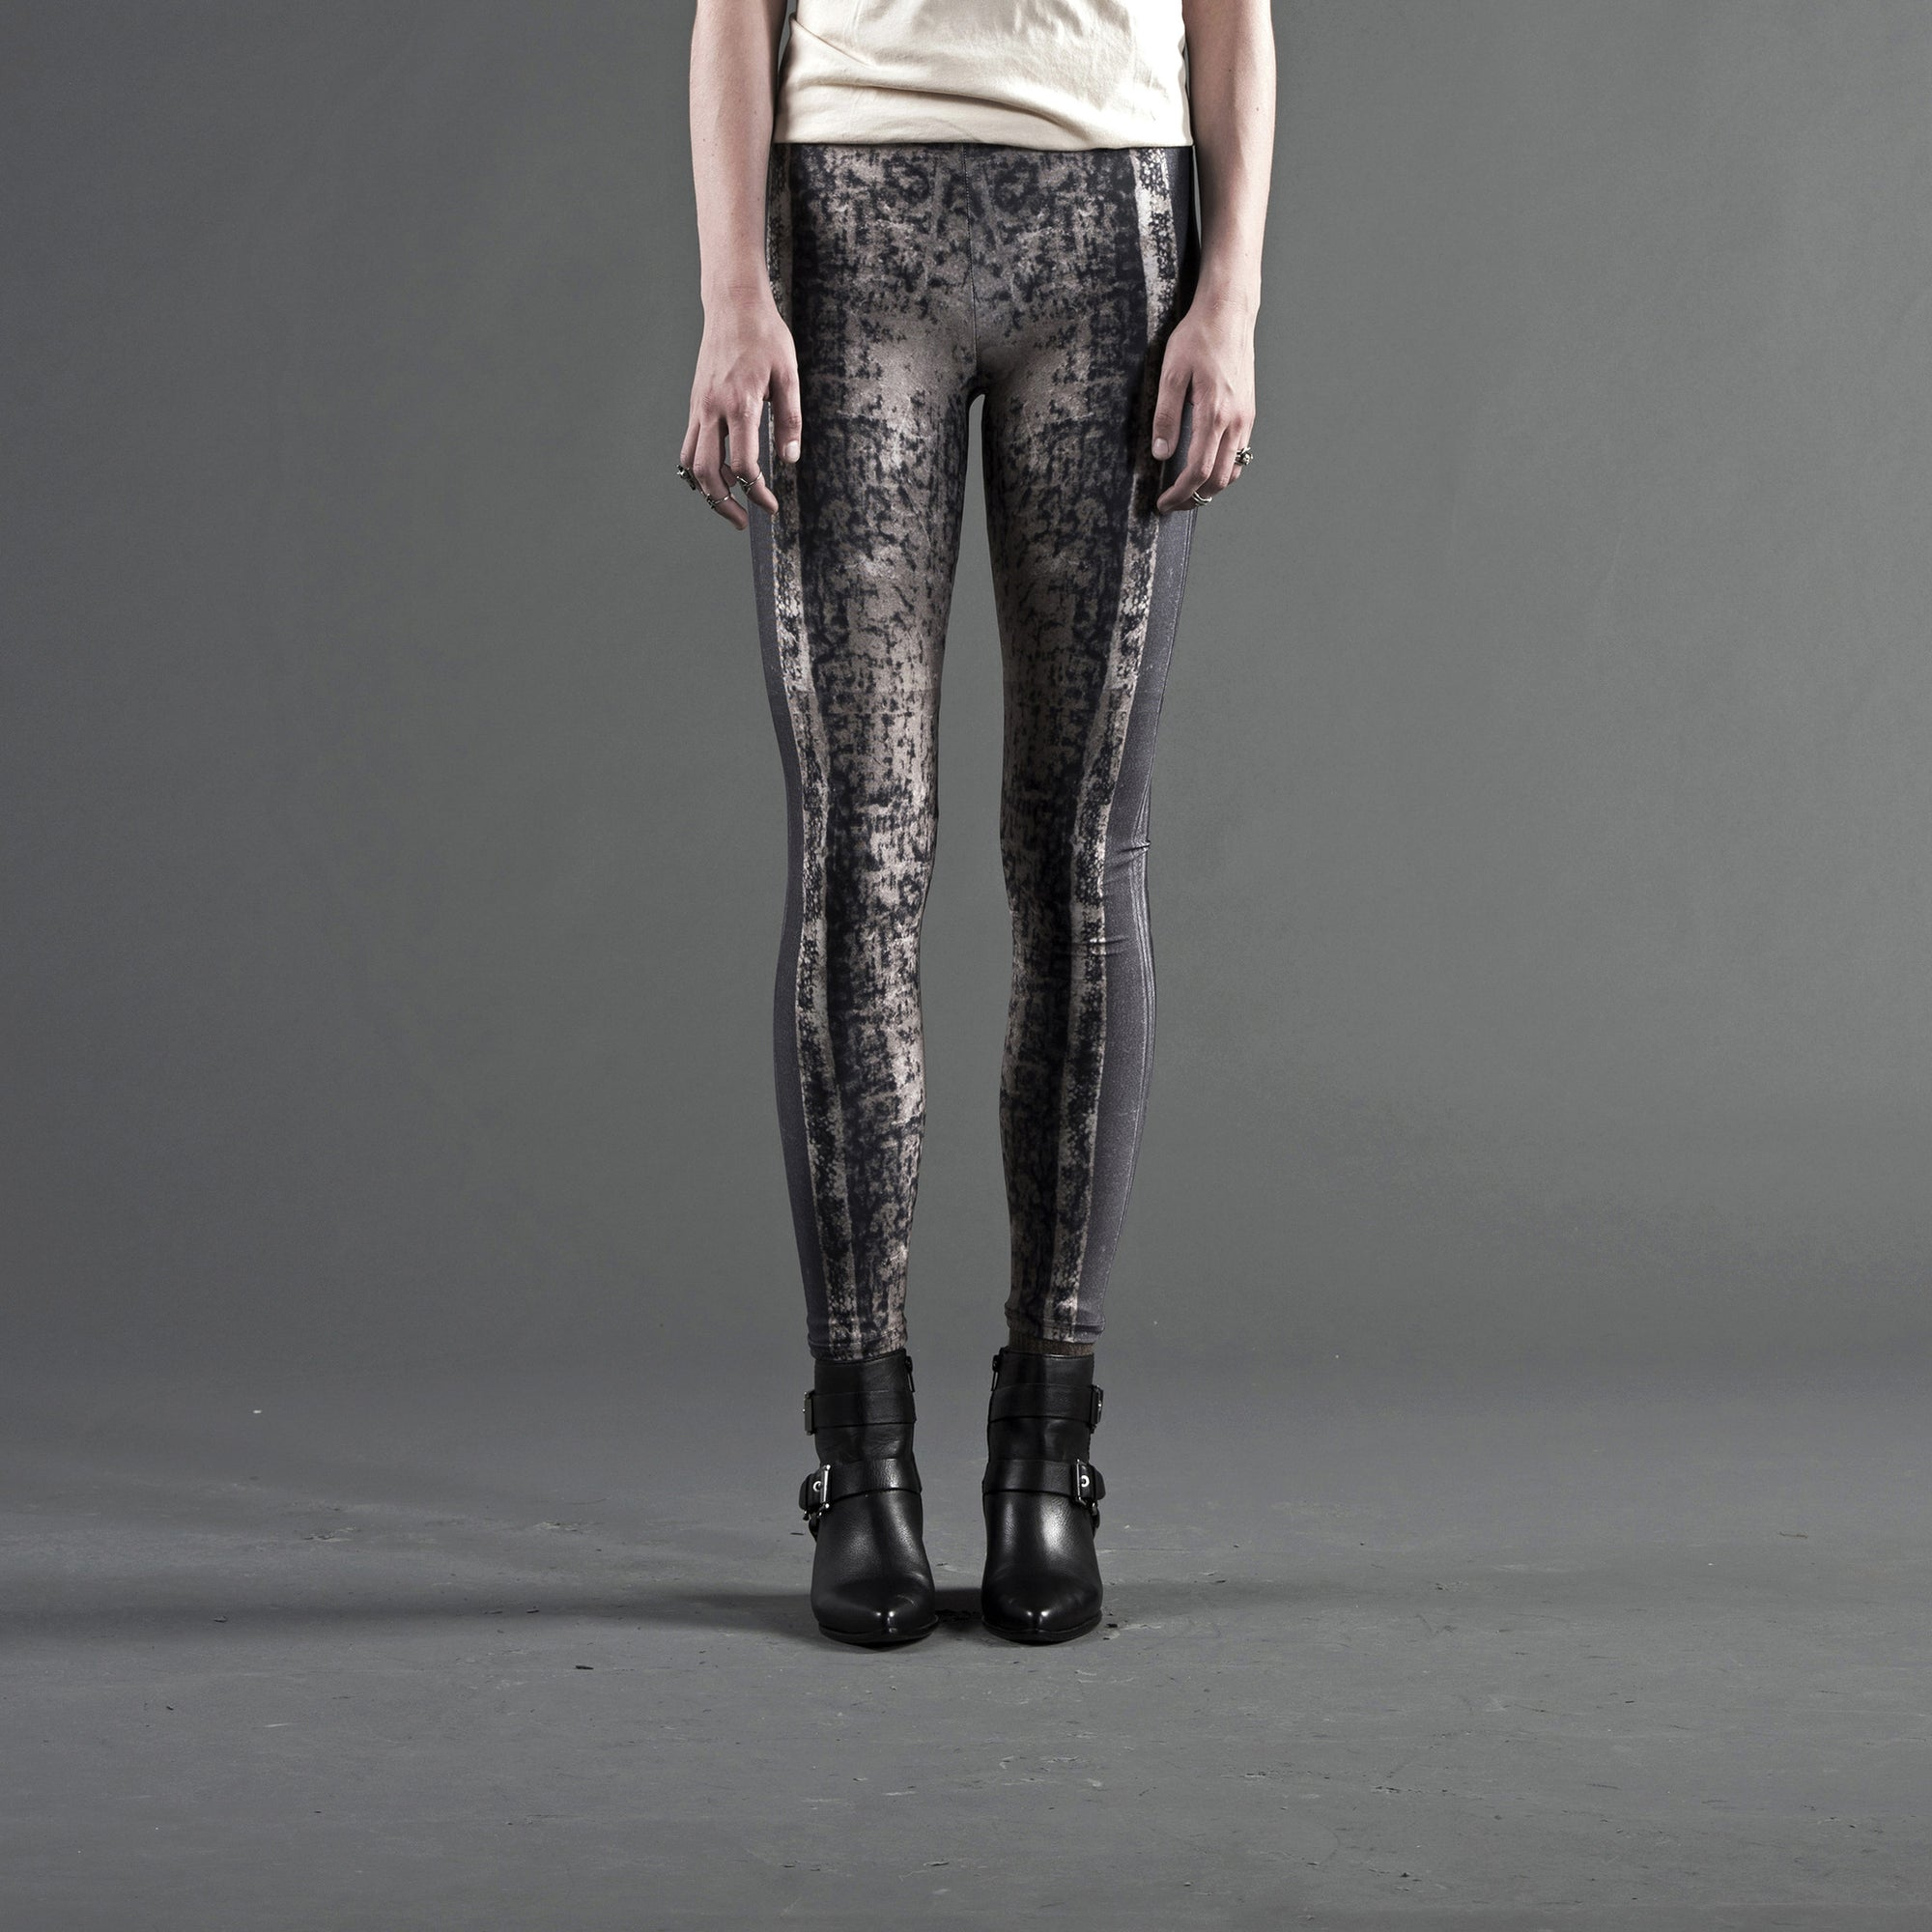 Leggings - Leather Bound Book Print, Elastic Waist